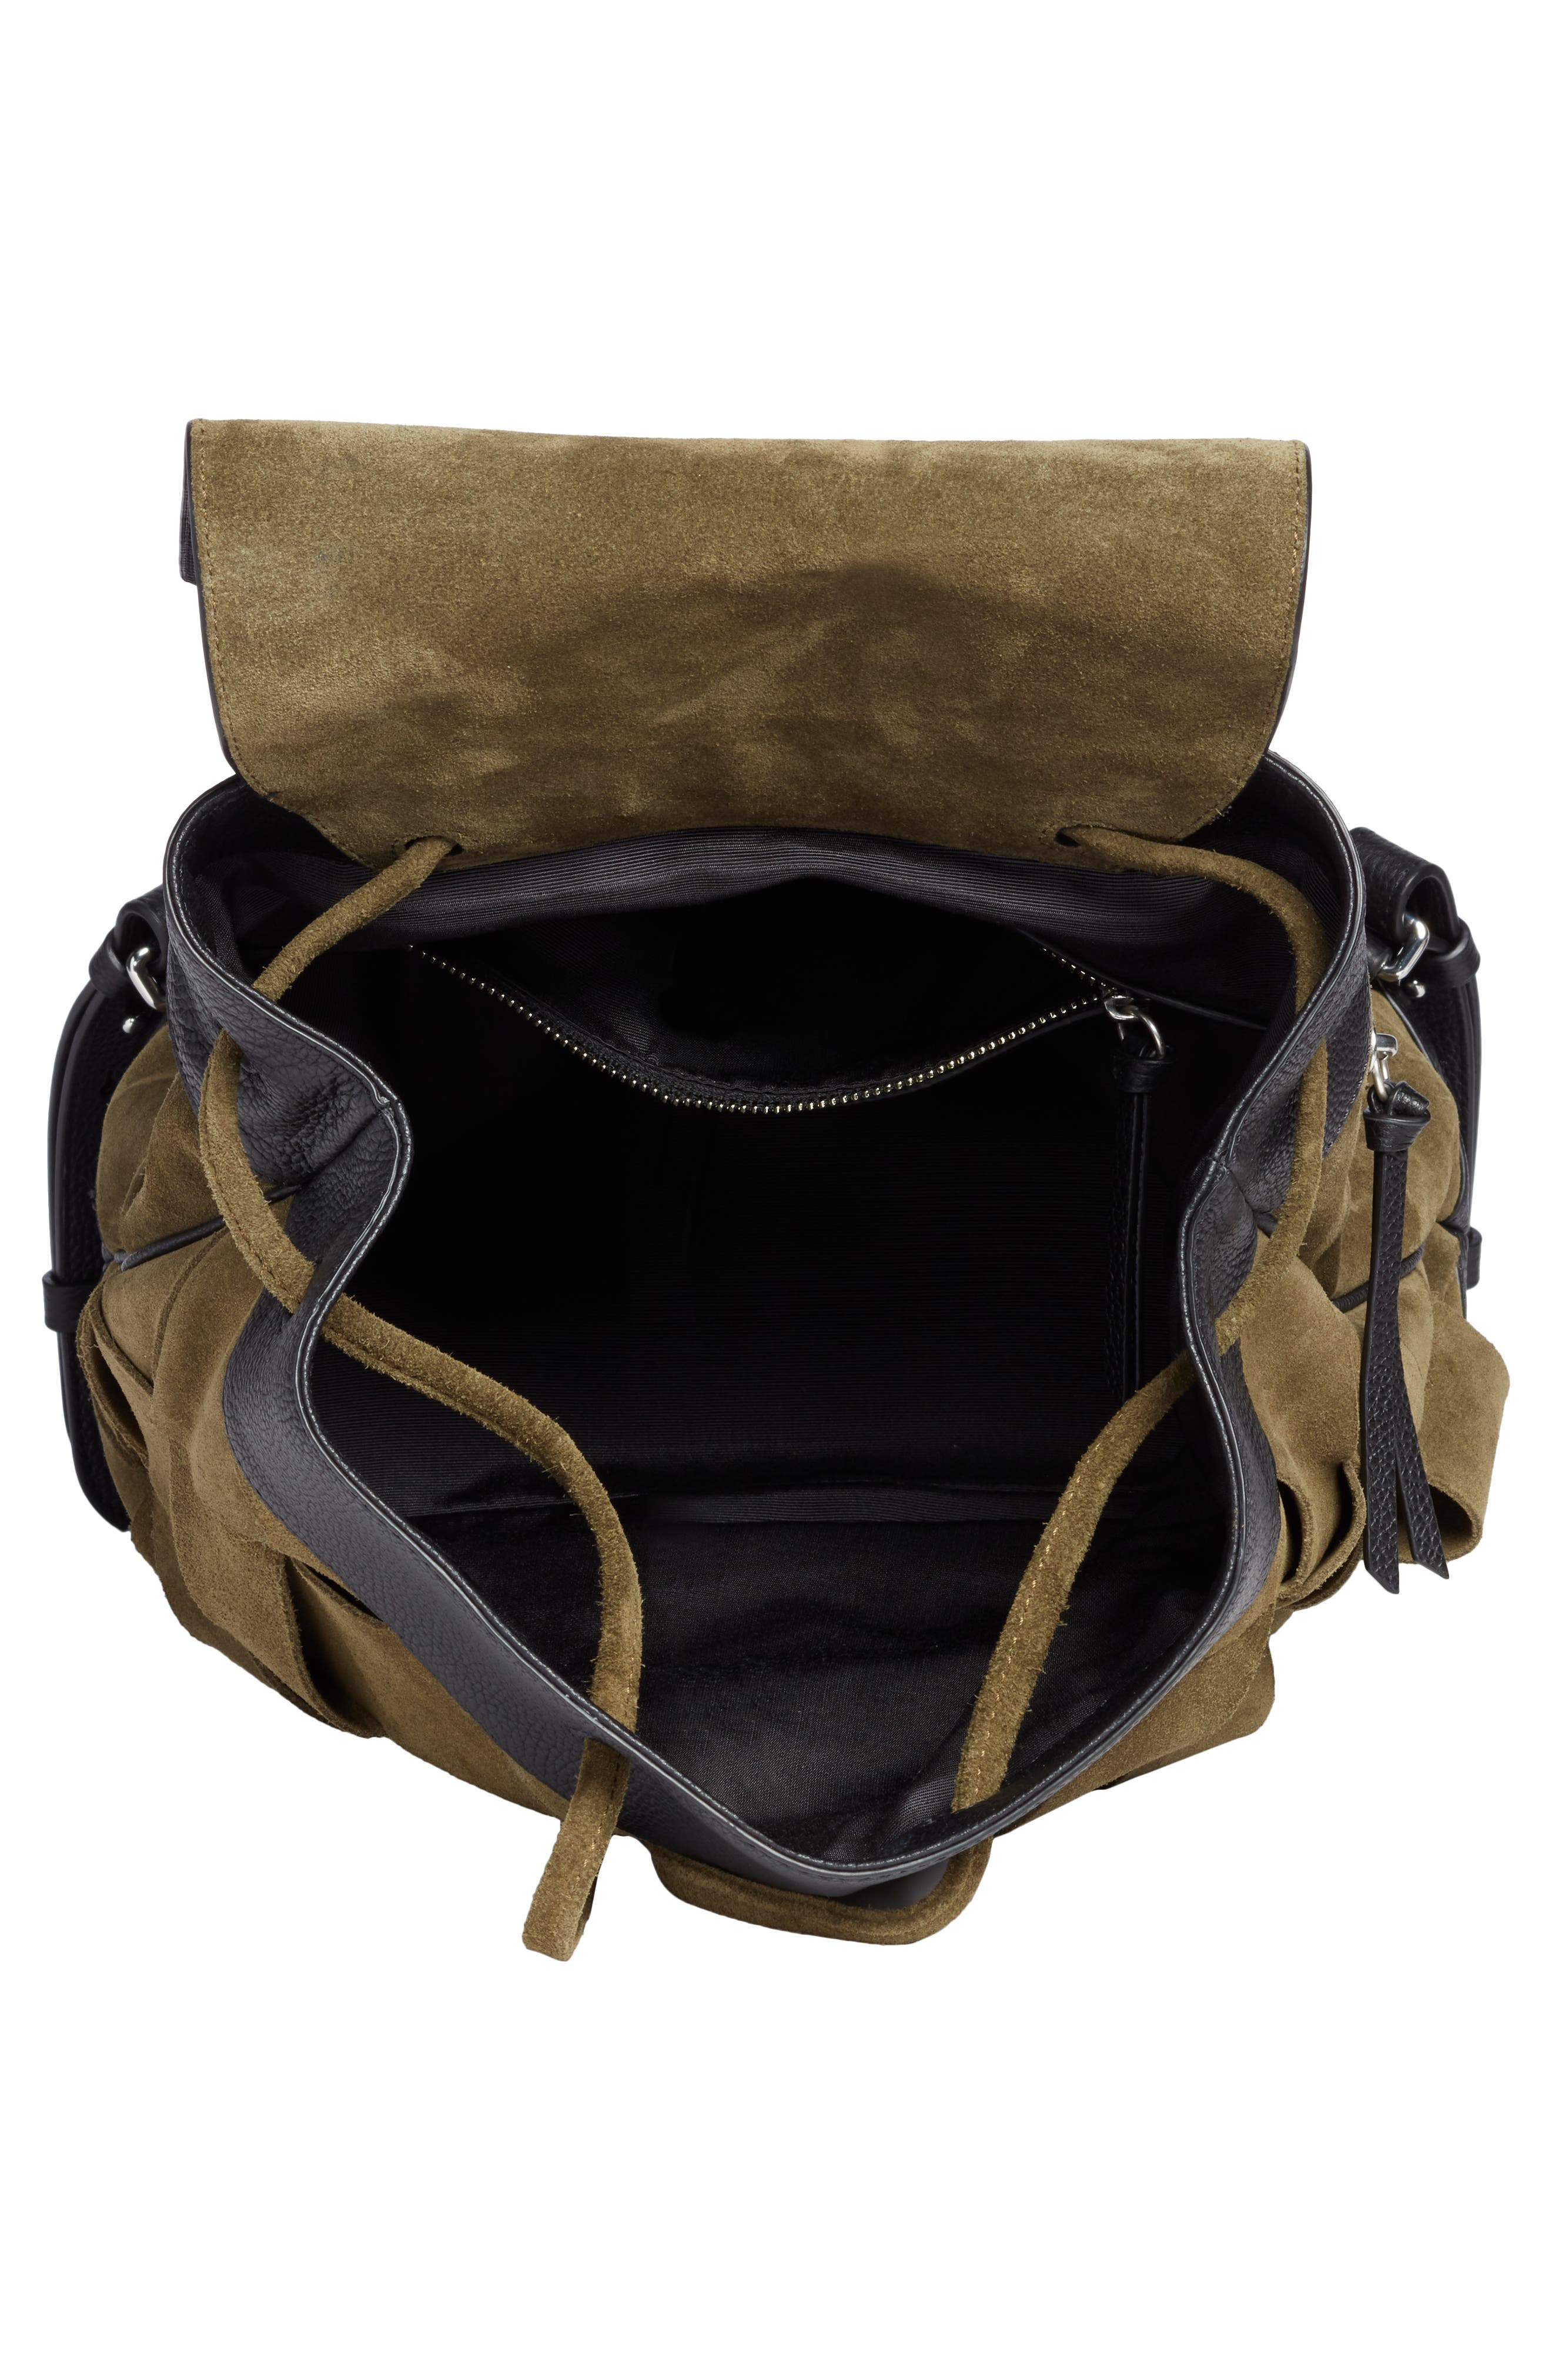 Pilot Suede & Leather Backpack,                             Alternate thumbnail 4, color,                             300